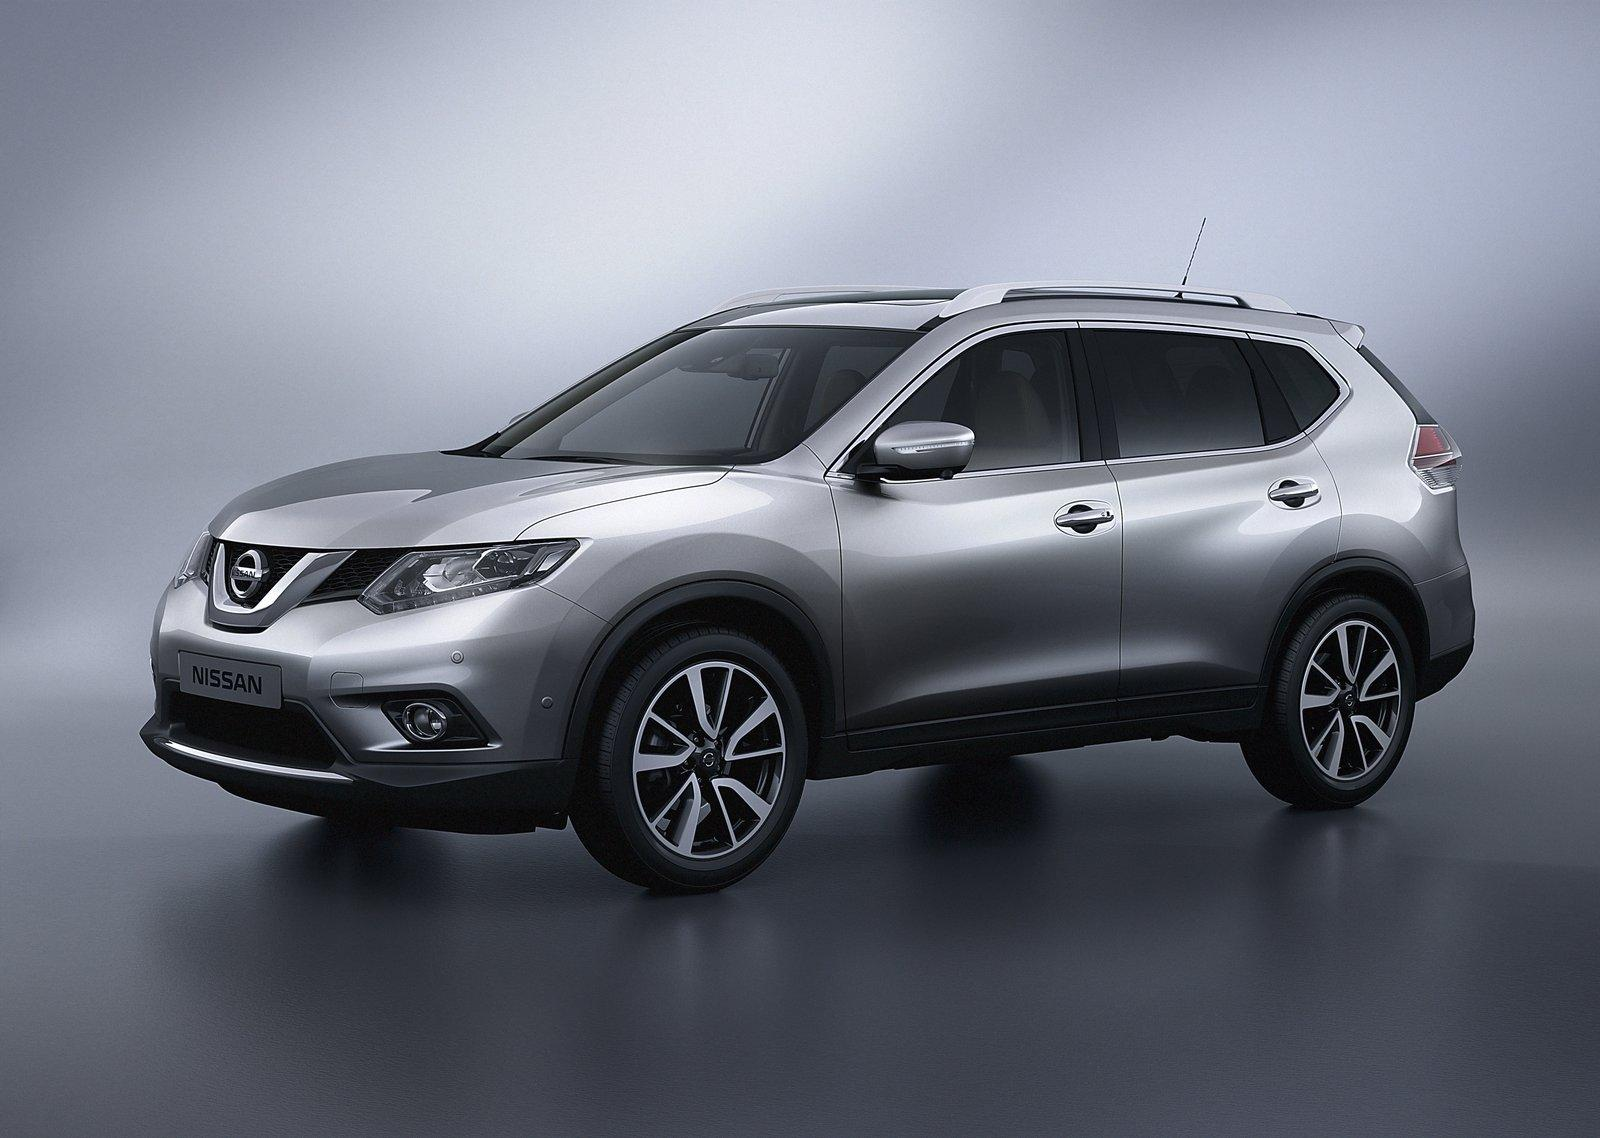 Nissan Cars - News: 2014 X-Trail unveiled